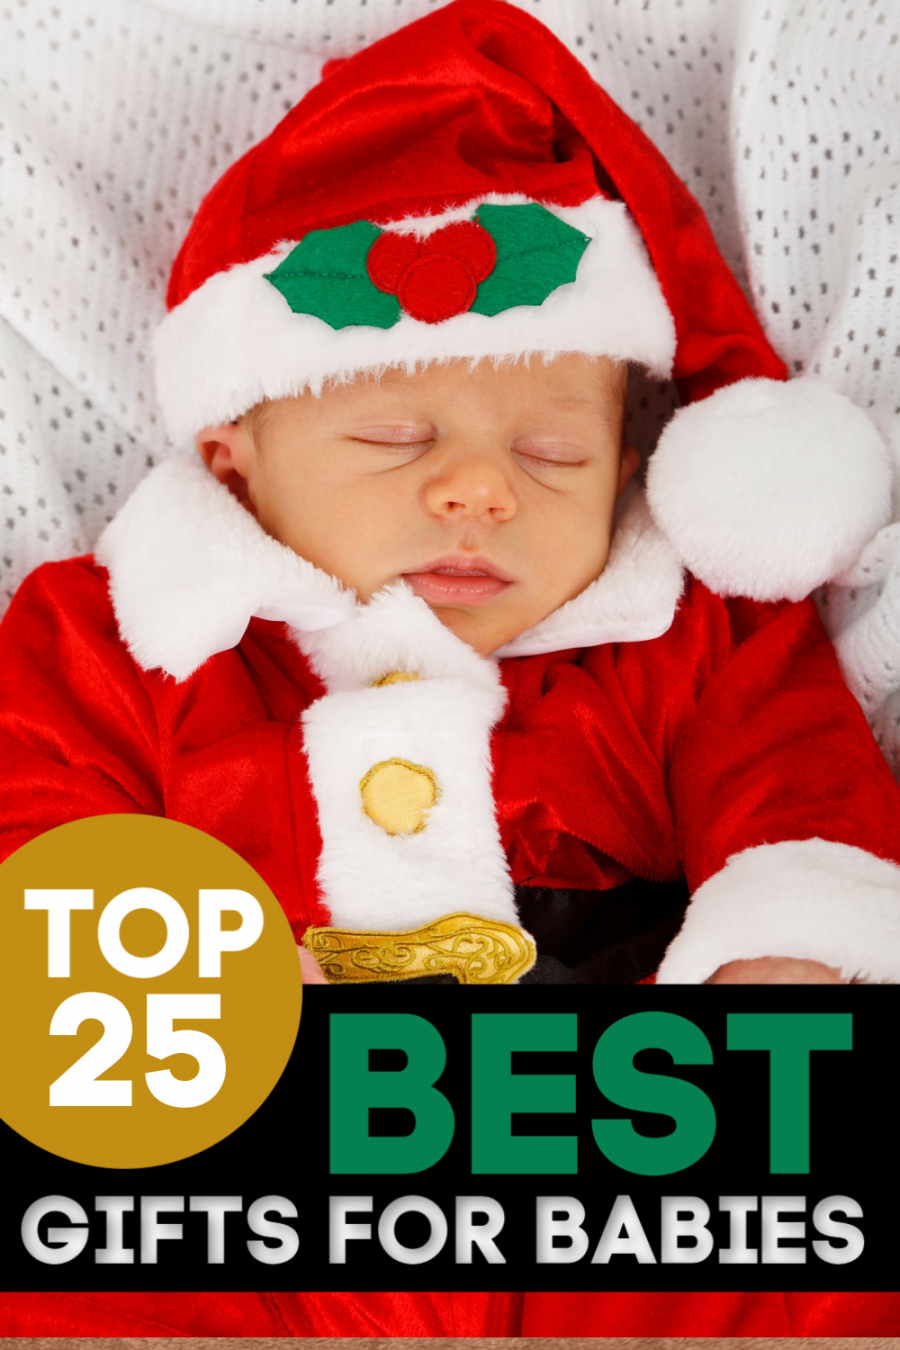 The Top 25 Best Gifts for Babies